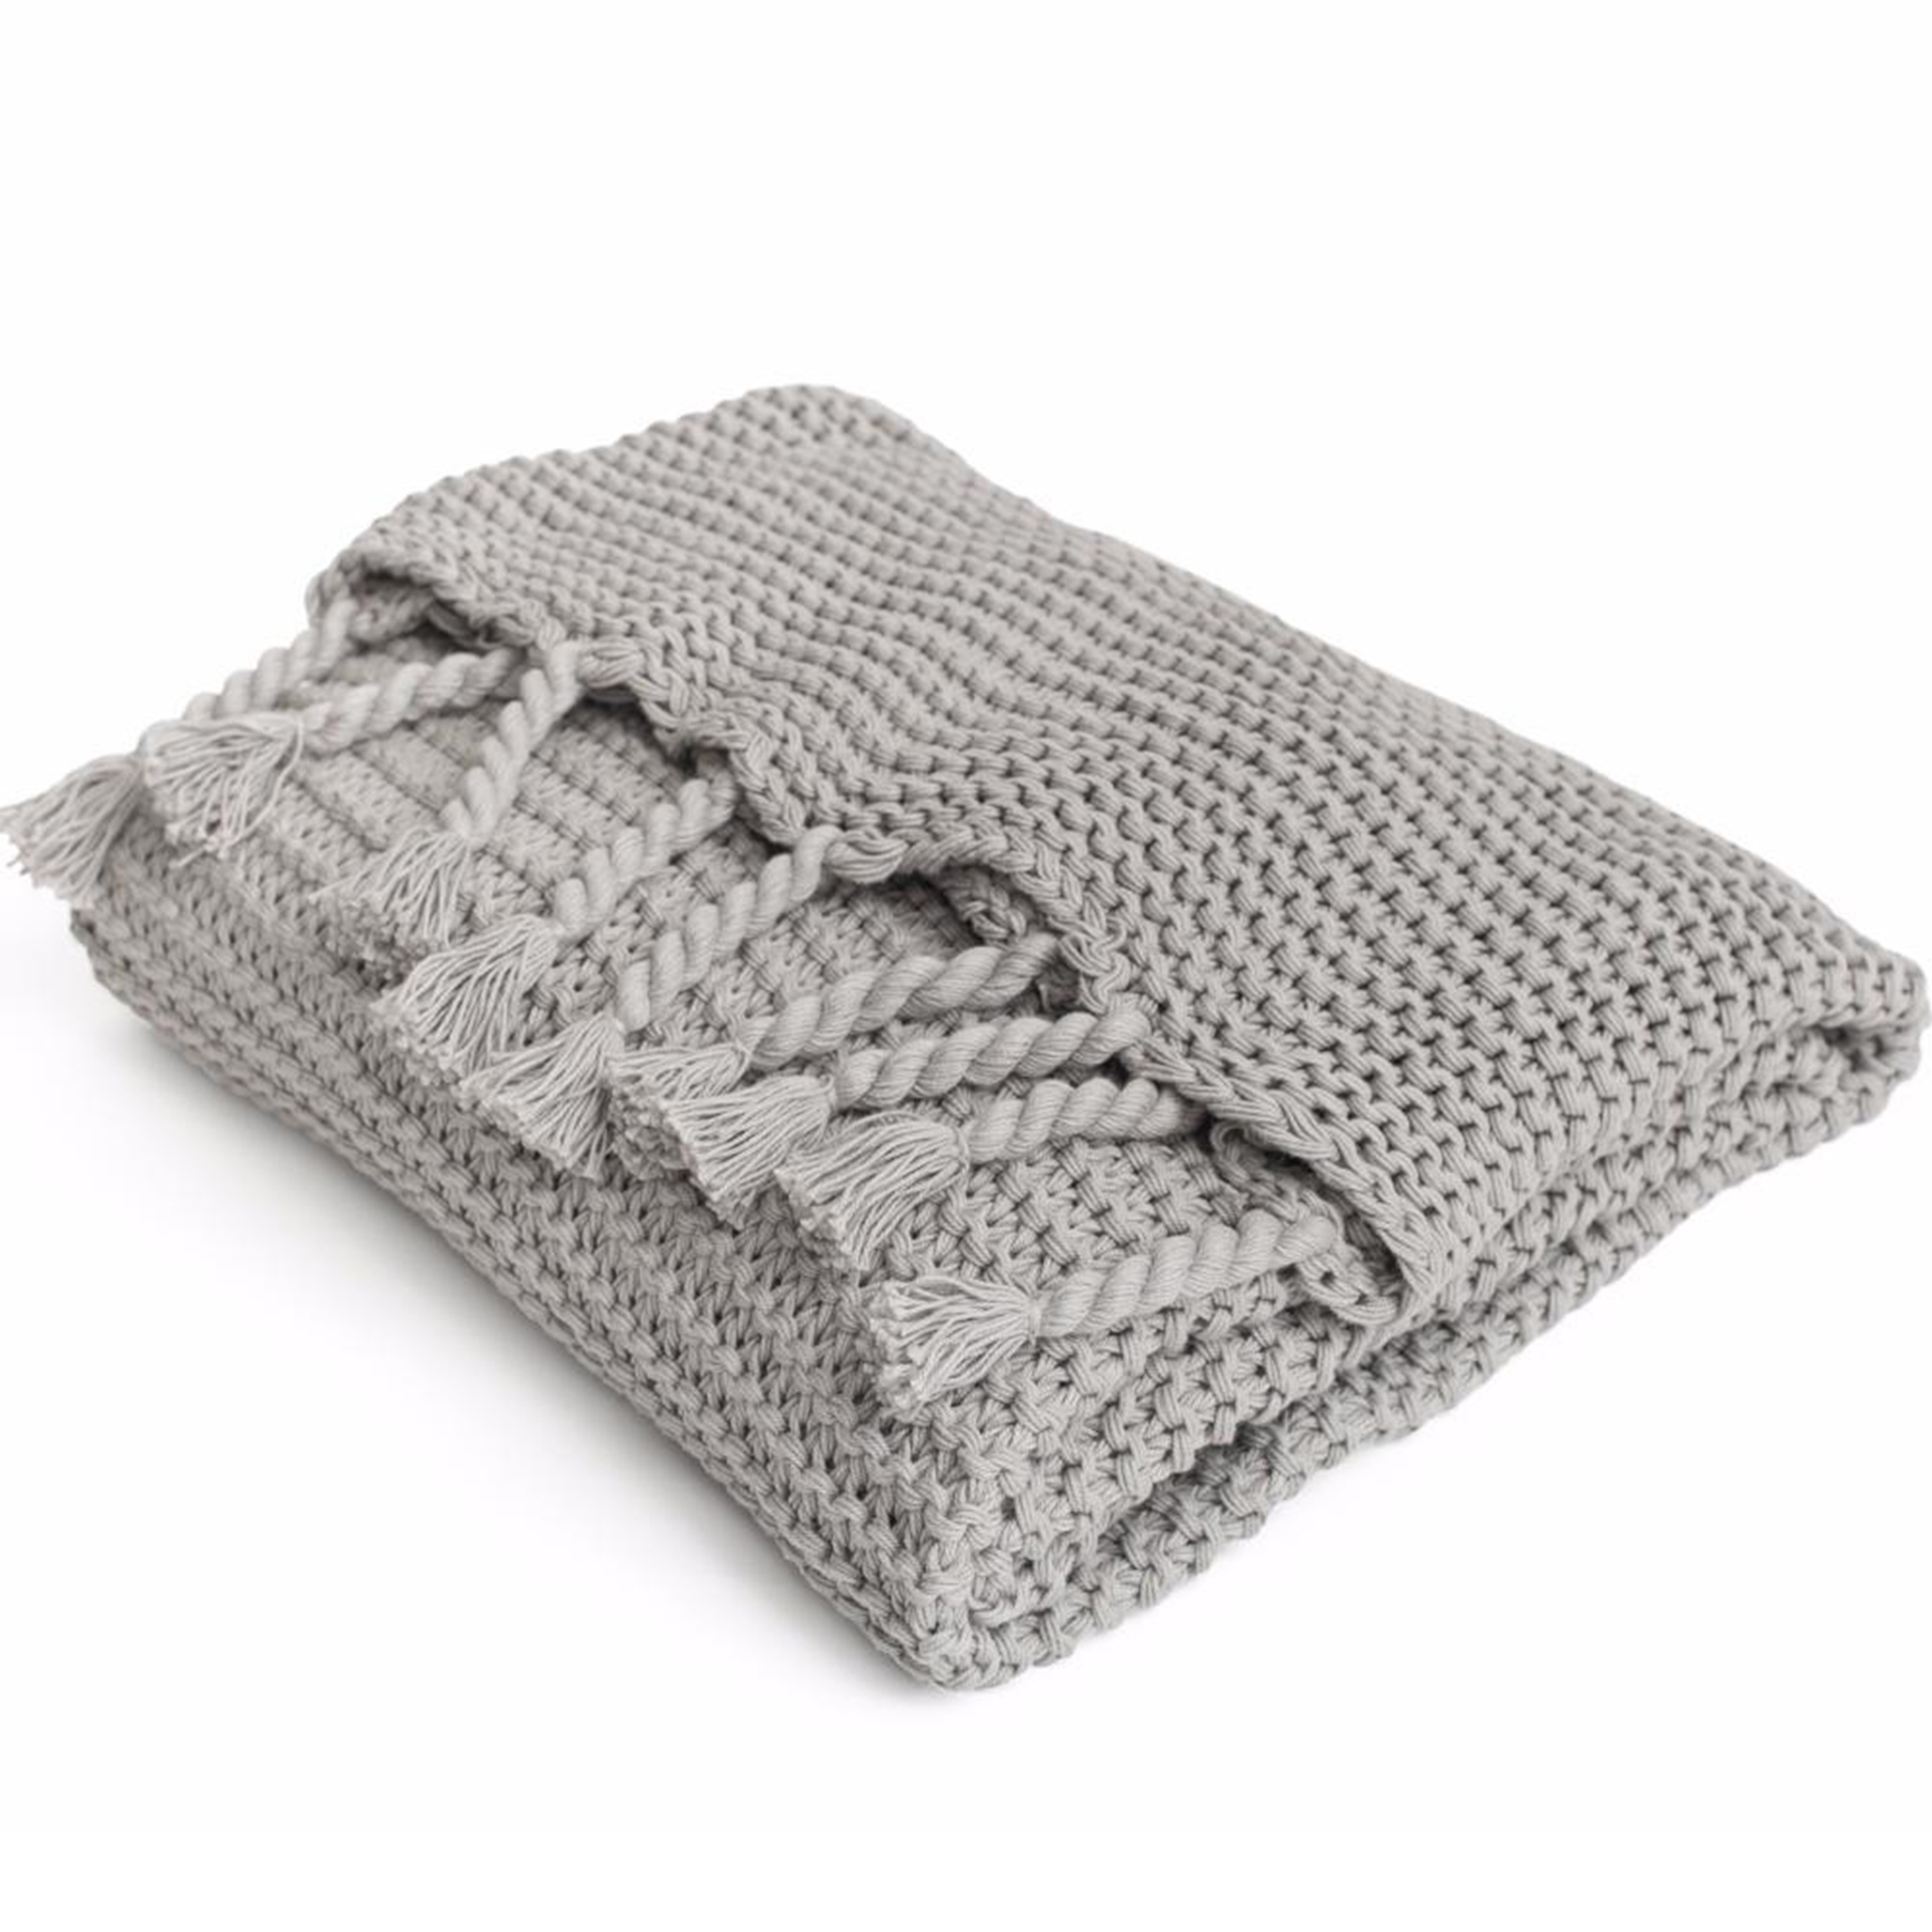 Gray Chunky Knit Throw Blanket with Tassels